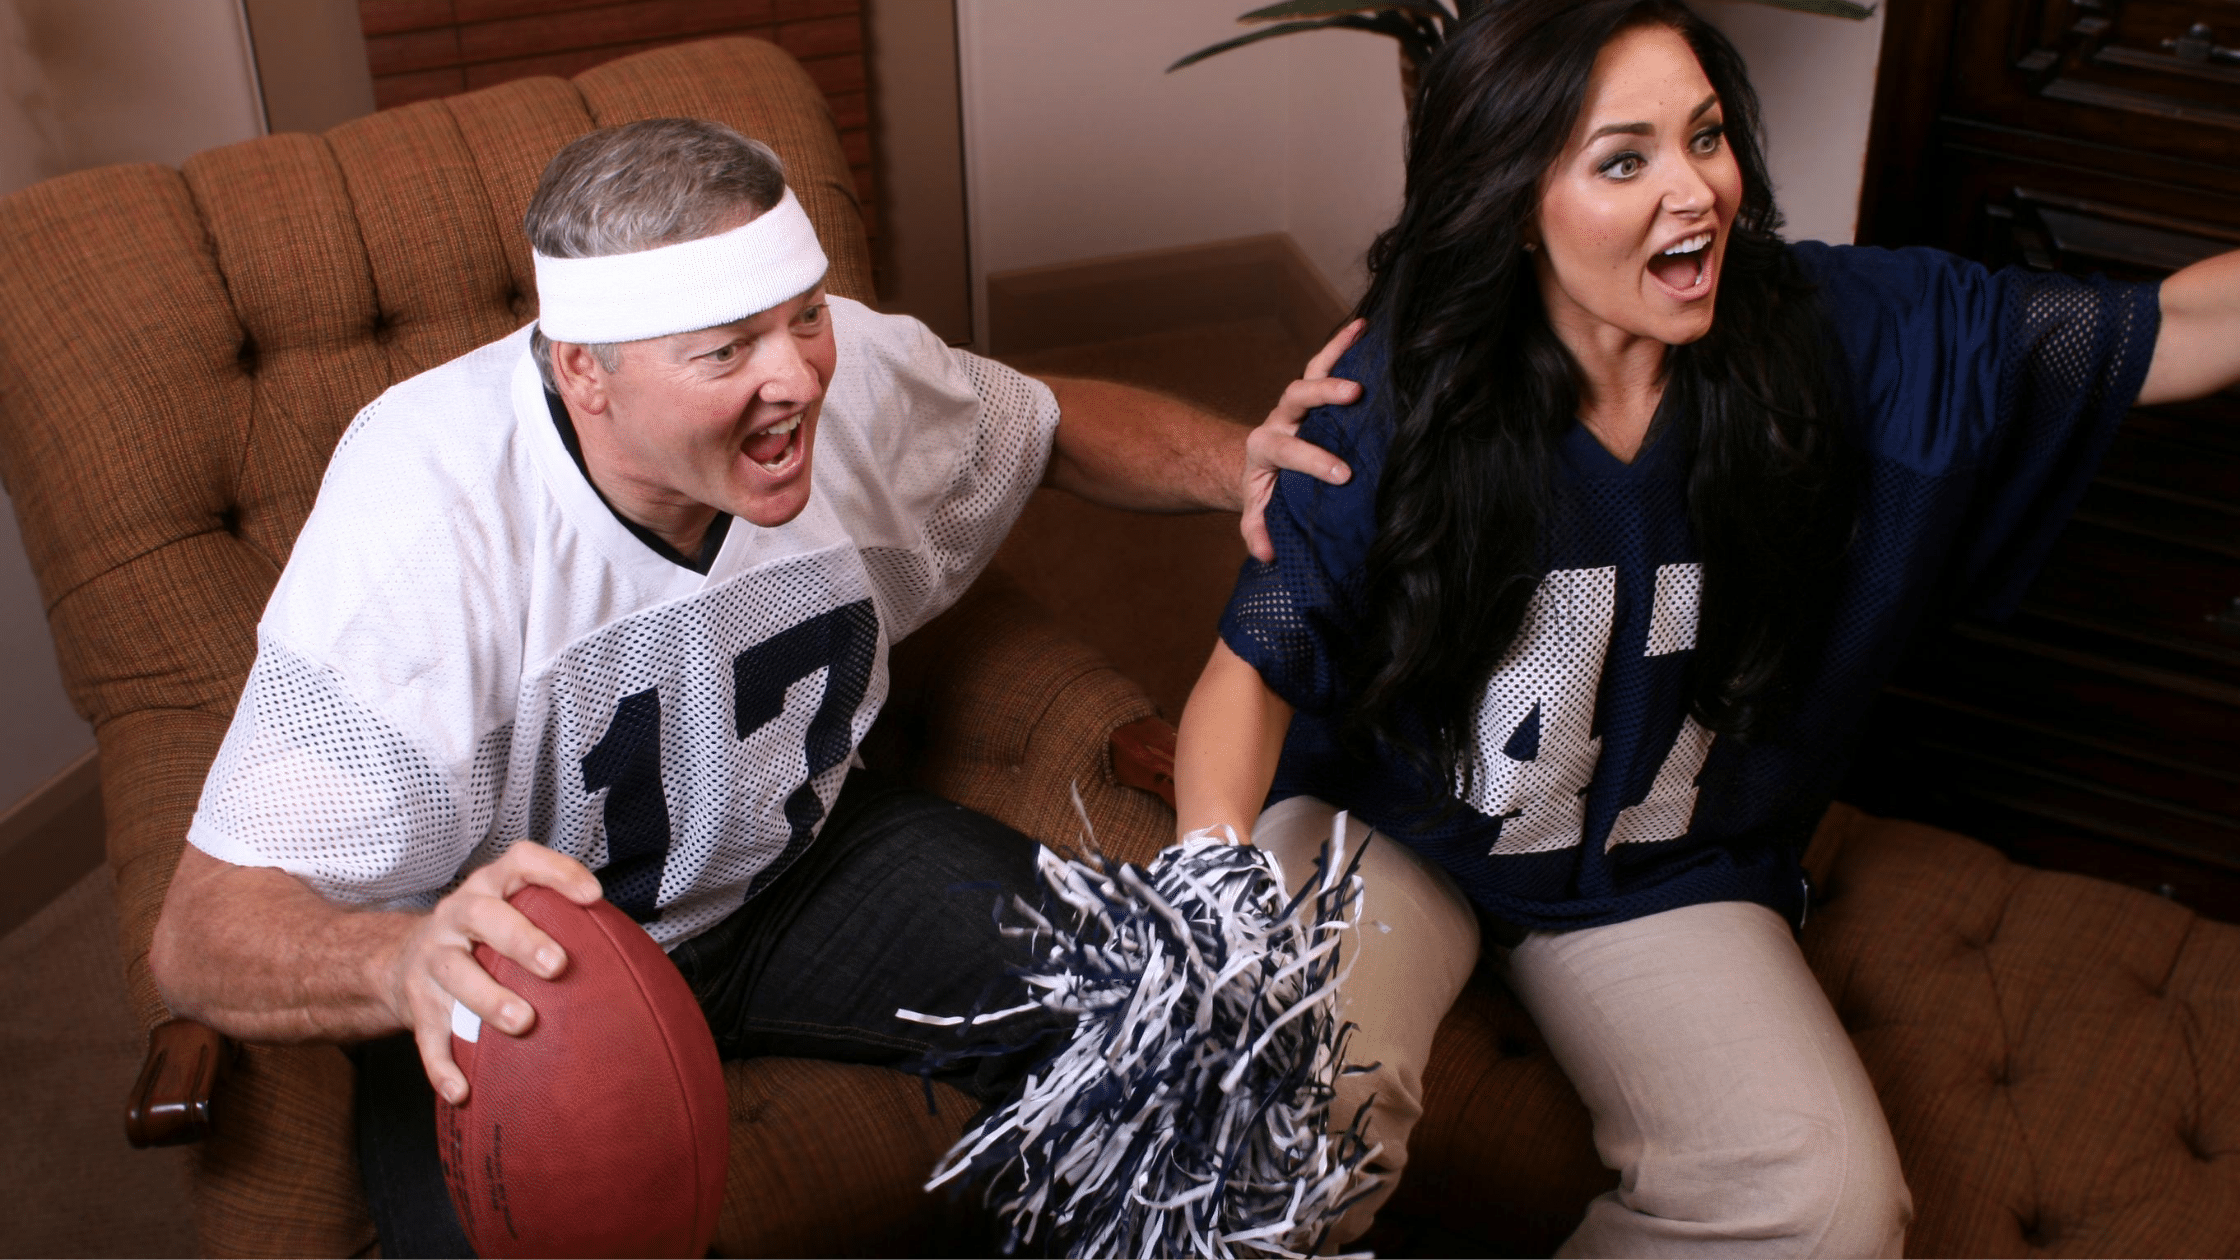 man and woman excited for a game